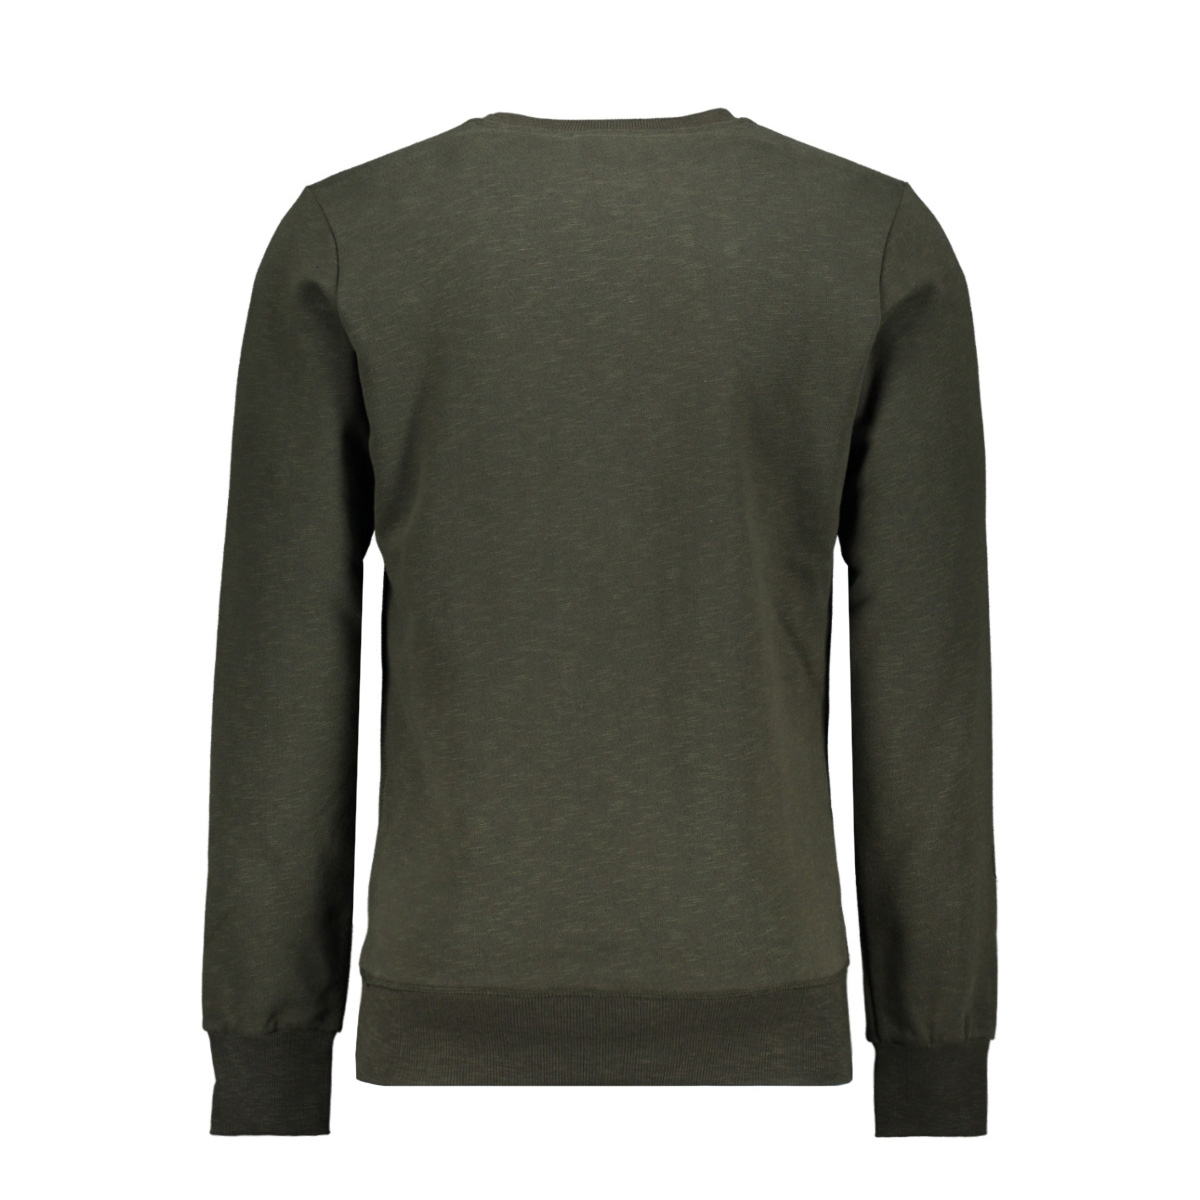 urban athletic crew m2000063a superdry sweater surplus goods olive slub